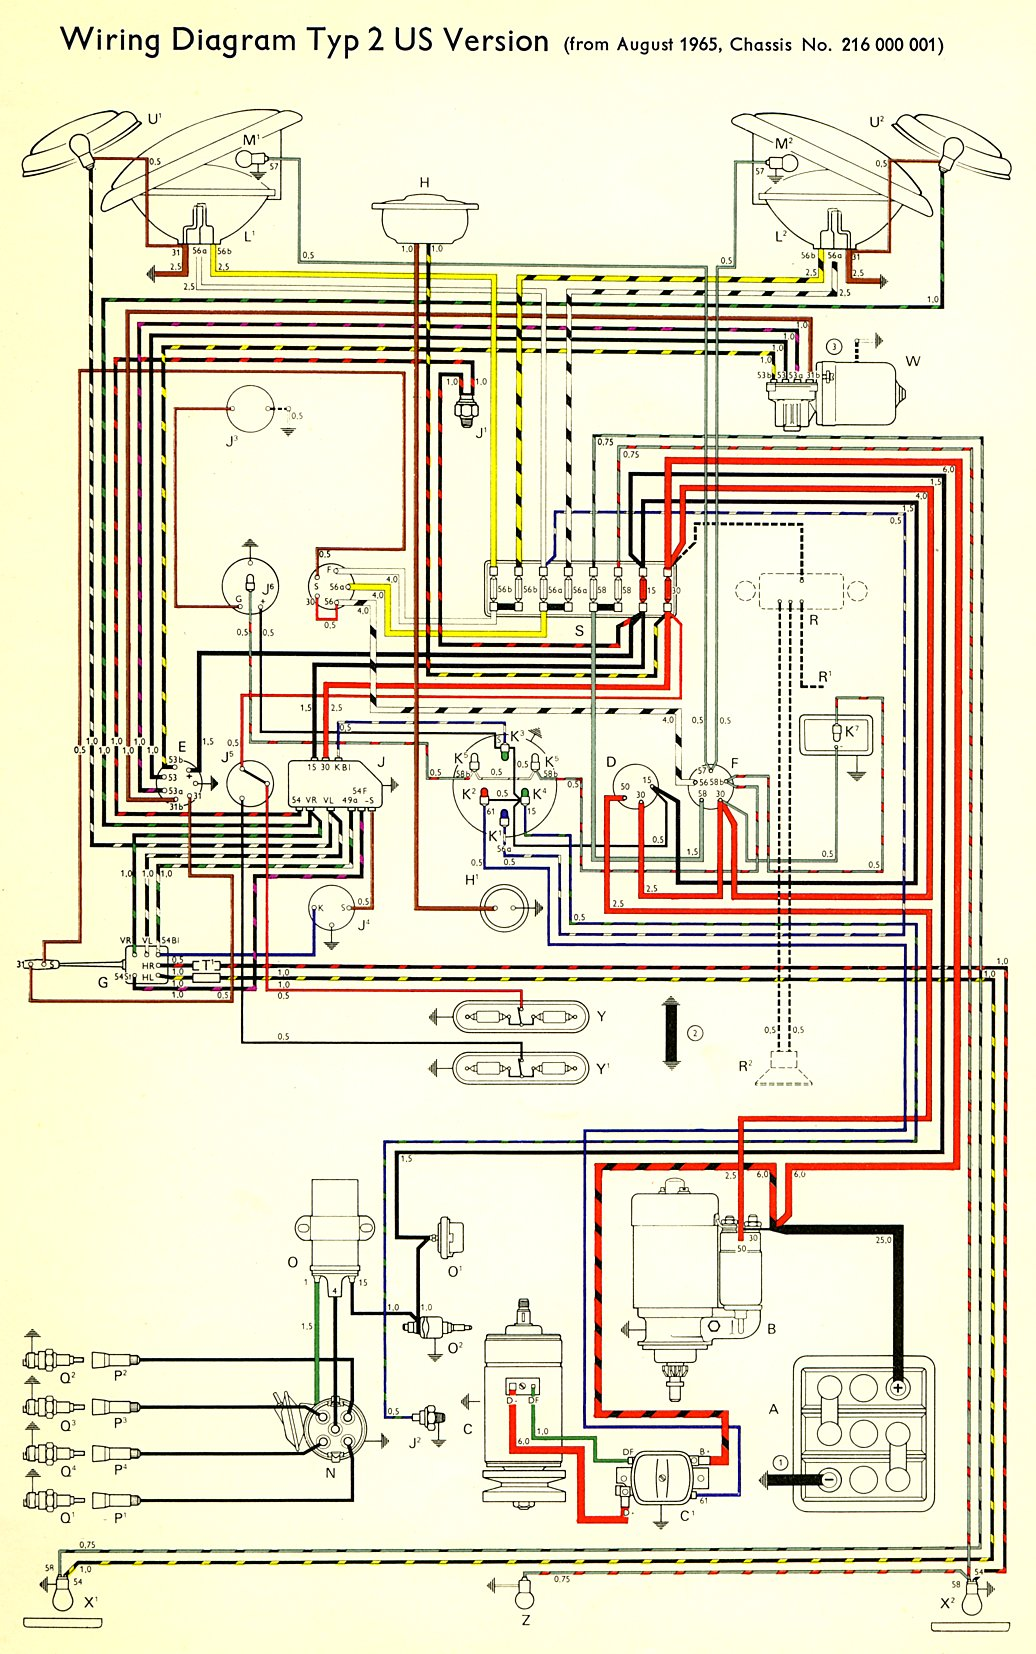 1966 bus wiring diagram usa thegoldenbug com rh thegoldenbug com VW Bus Engine  Diagram 1969 VW